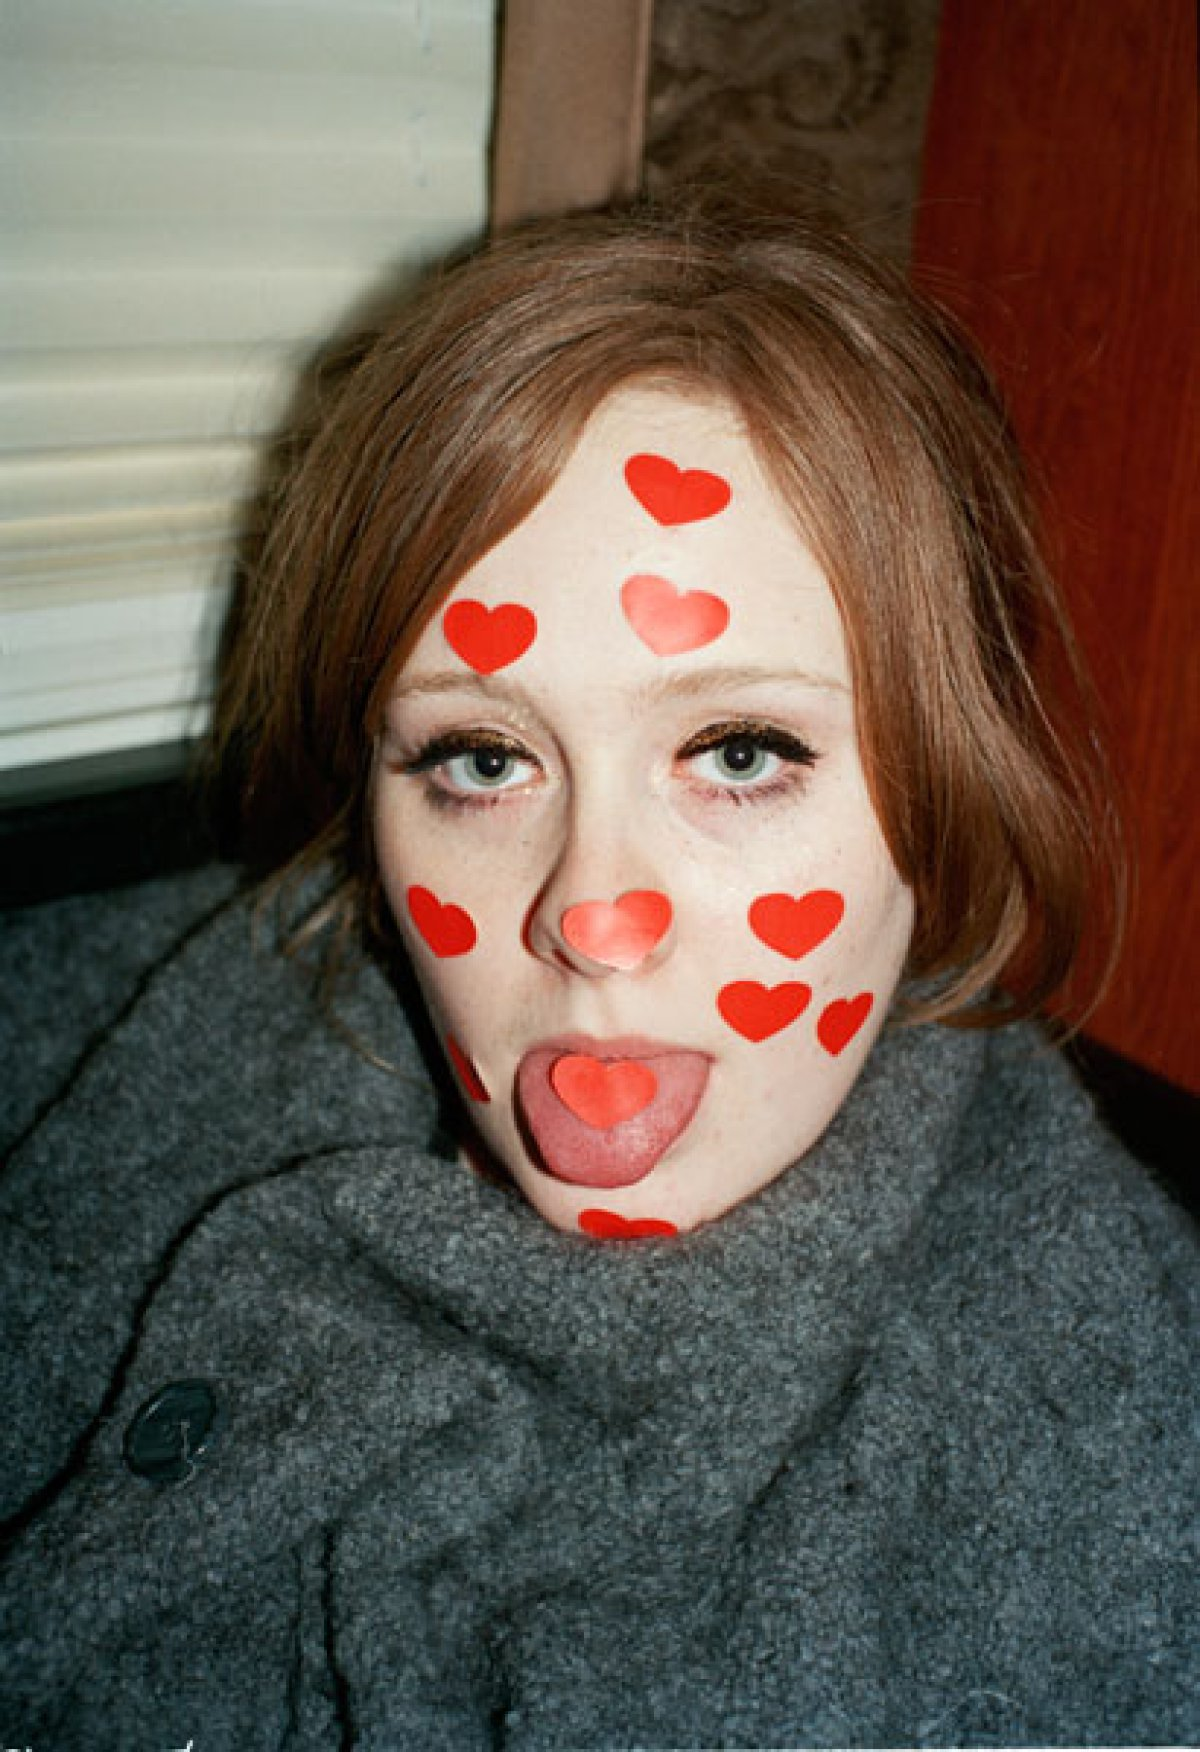 Adele by Alex Sturrock (the guy that broke her heart)